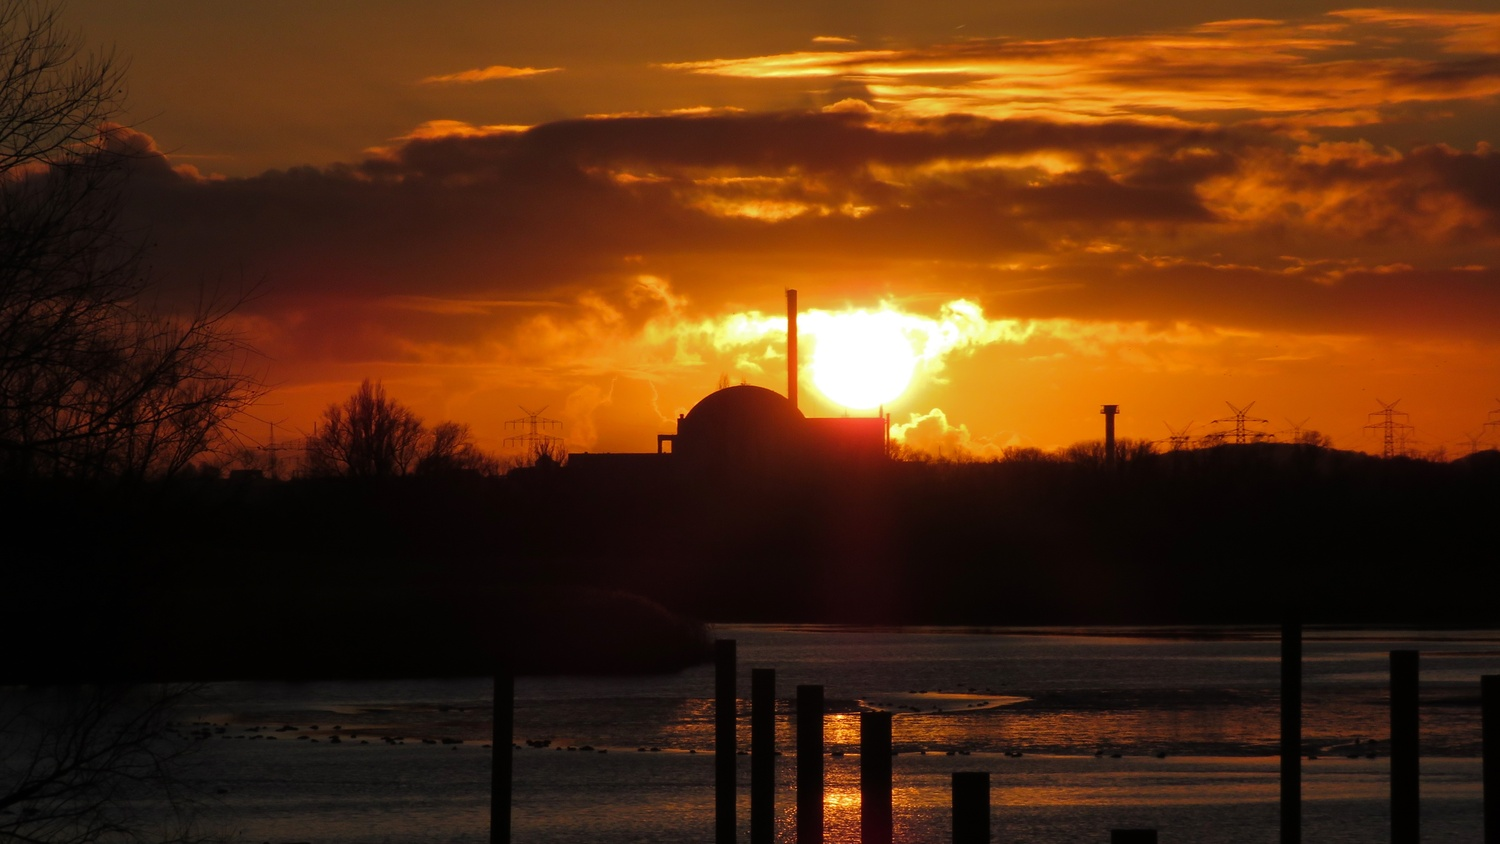 sunset over nuclear power plant by Kandid Letters